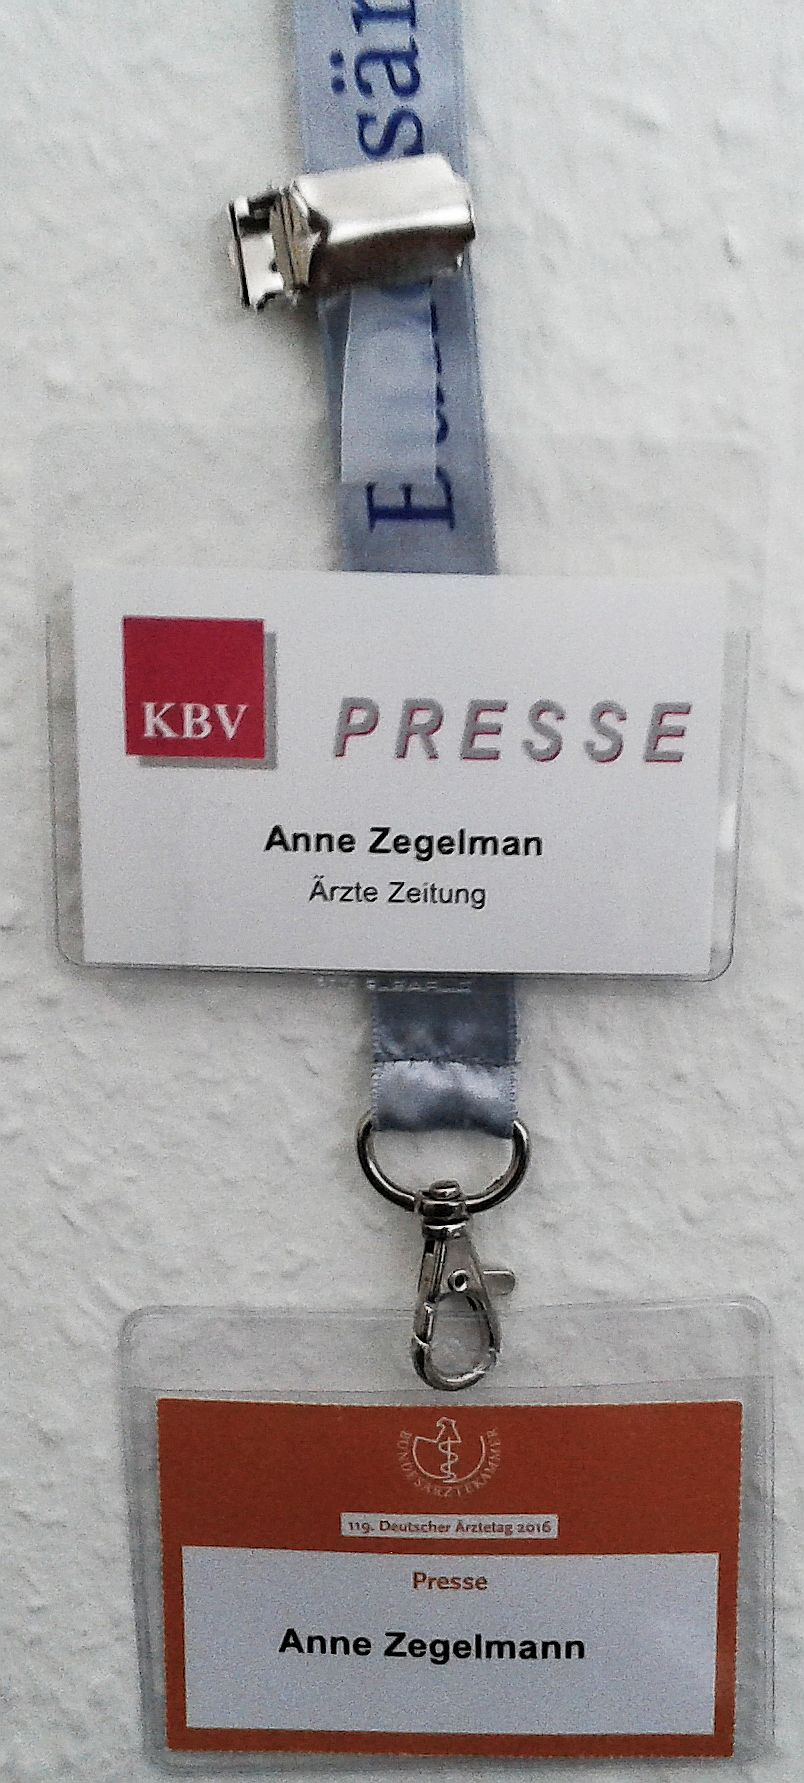 Presseschilder